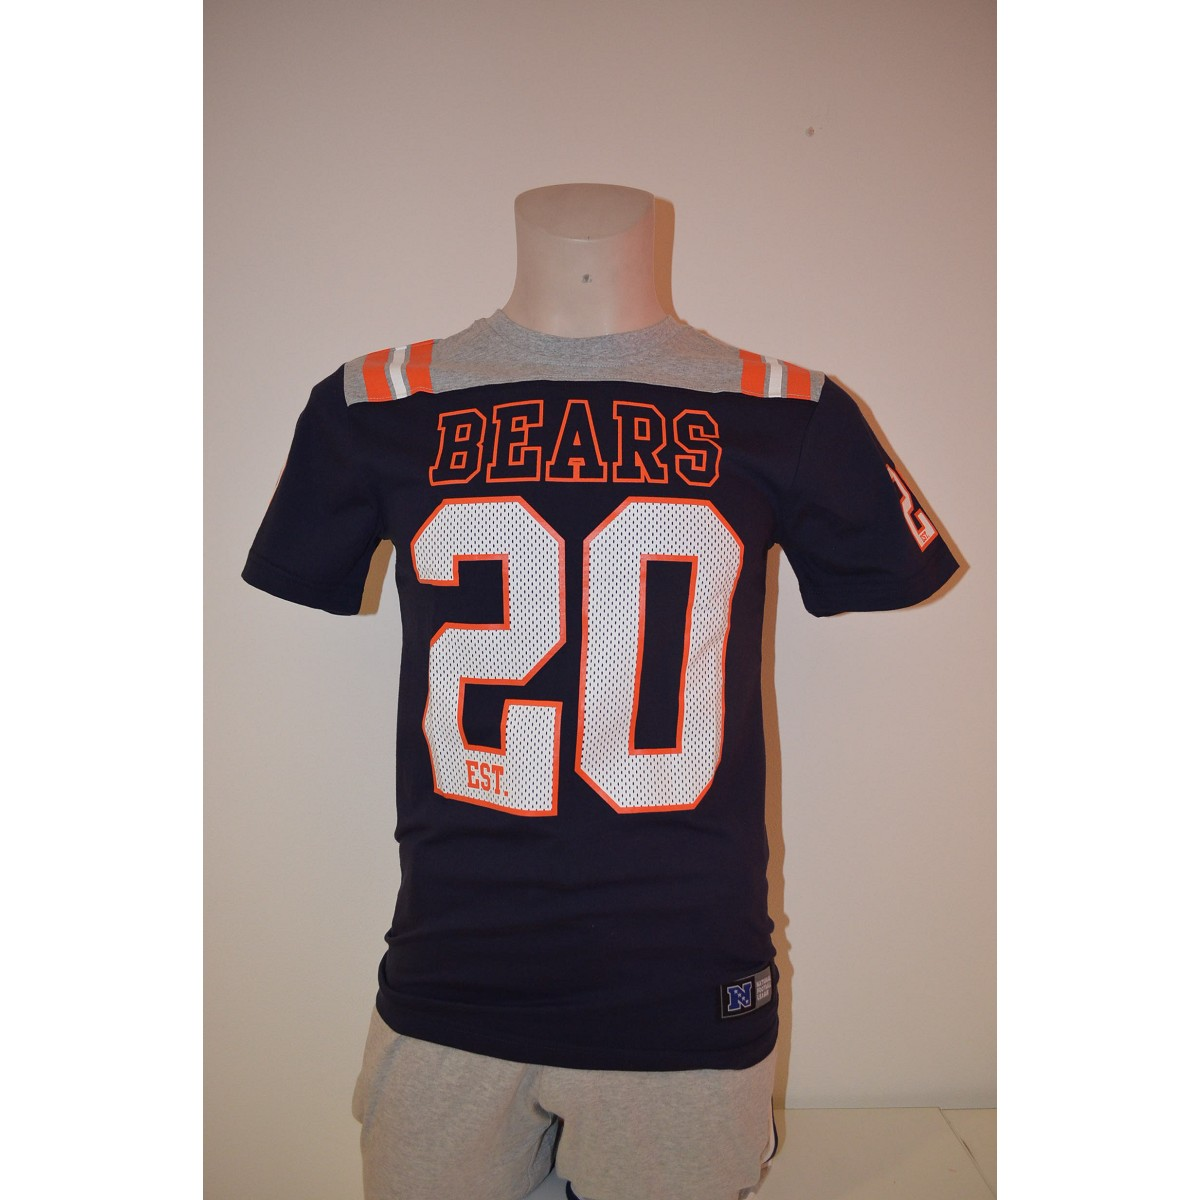 Tshirt Majestic Gatril Number Chicago Bears Maglie